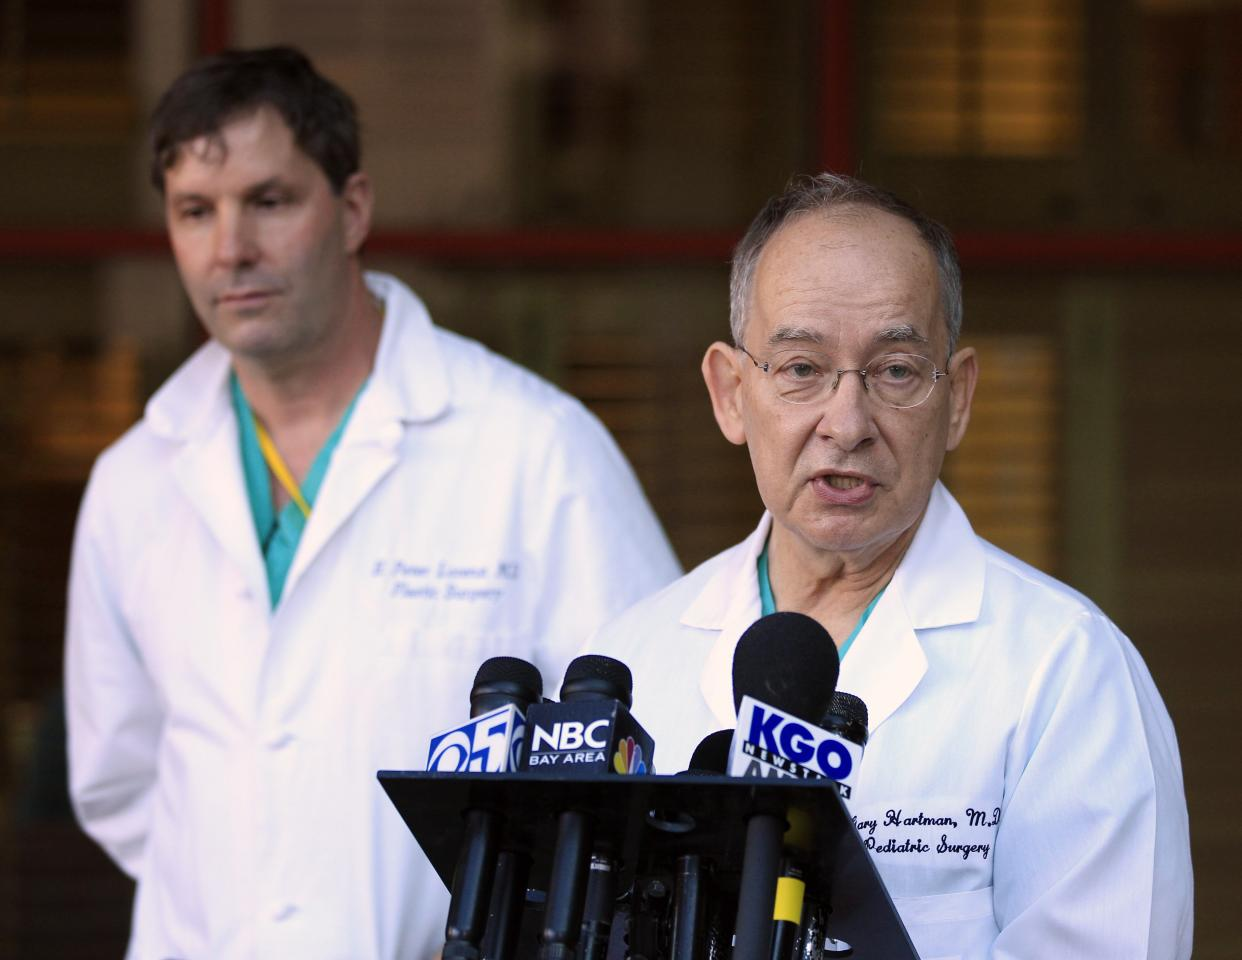 Pediatric surgeon Gary Hartman, at right, and plastic surgeon Peter Lorenz address the media following surgery on conjoined twins at the Lucile Packard Children's Hospital,Tuesday, Nov. 1, 2011 in Stanford, Calif. Twin 2-year-old girls Angelina and Angelica Sabuco underwent an expected nine hours of surgery by a team of more than 20 doctors and nurses at the Stanford hospital to gain their independence. The two sisters were born joined at the chest and abdomen and were separated Tuesday during a lengthy, complex procedure at the Stanford hospital. (AP Photo/Marcio Jose Sanchez)